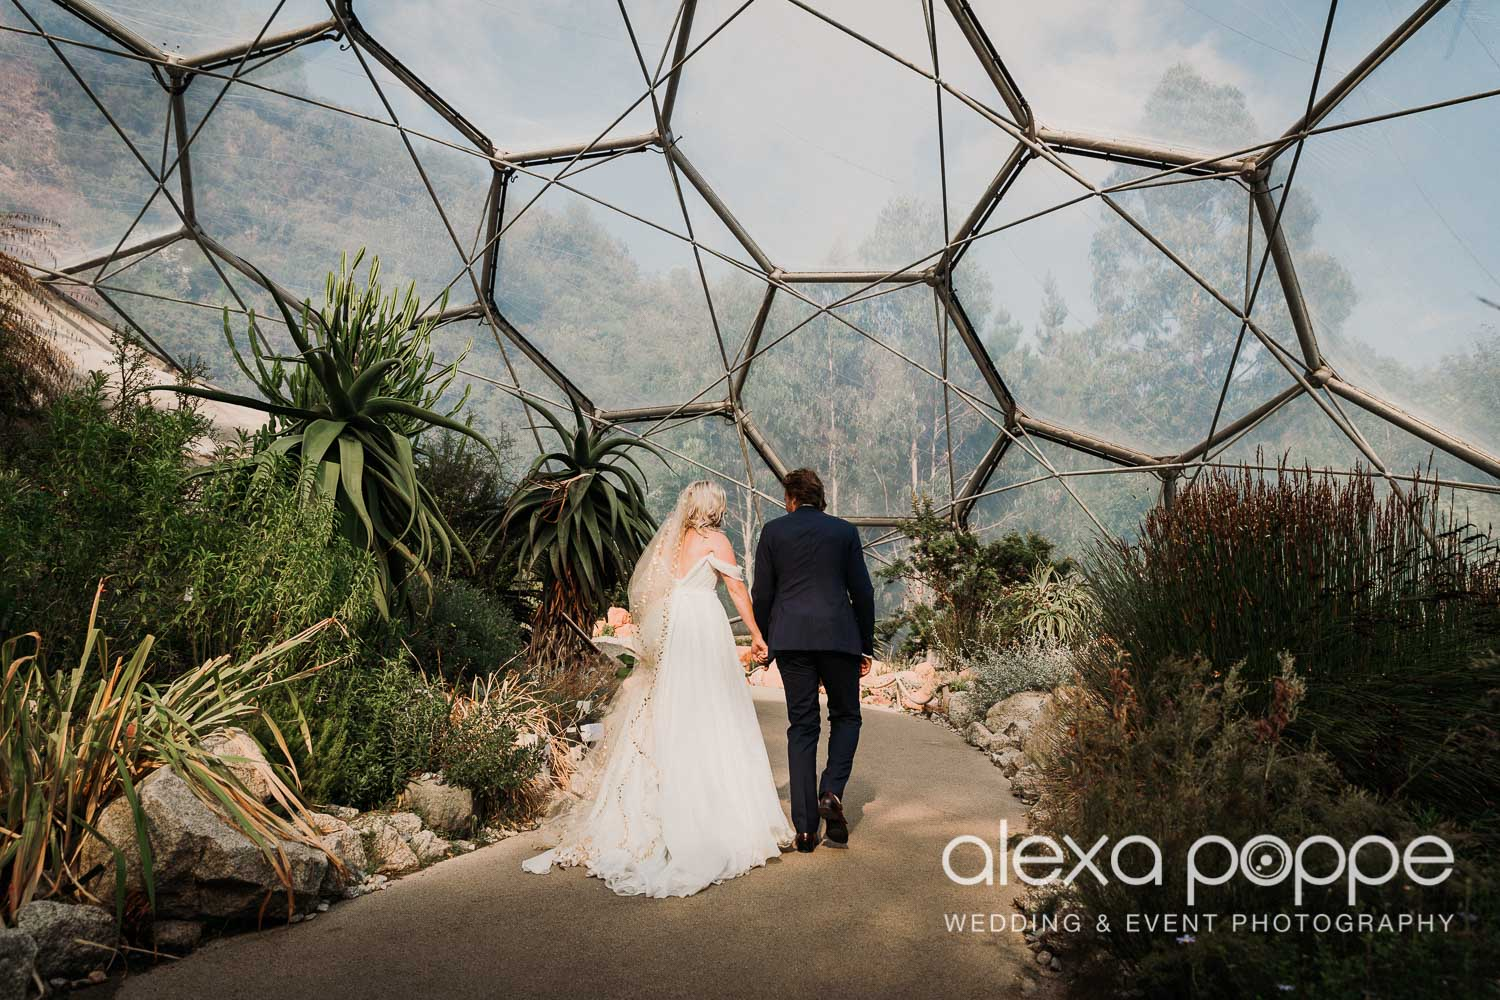 VA_wedding_edenproject_carnglaze_56.jpg